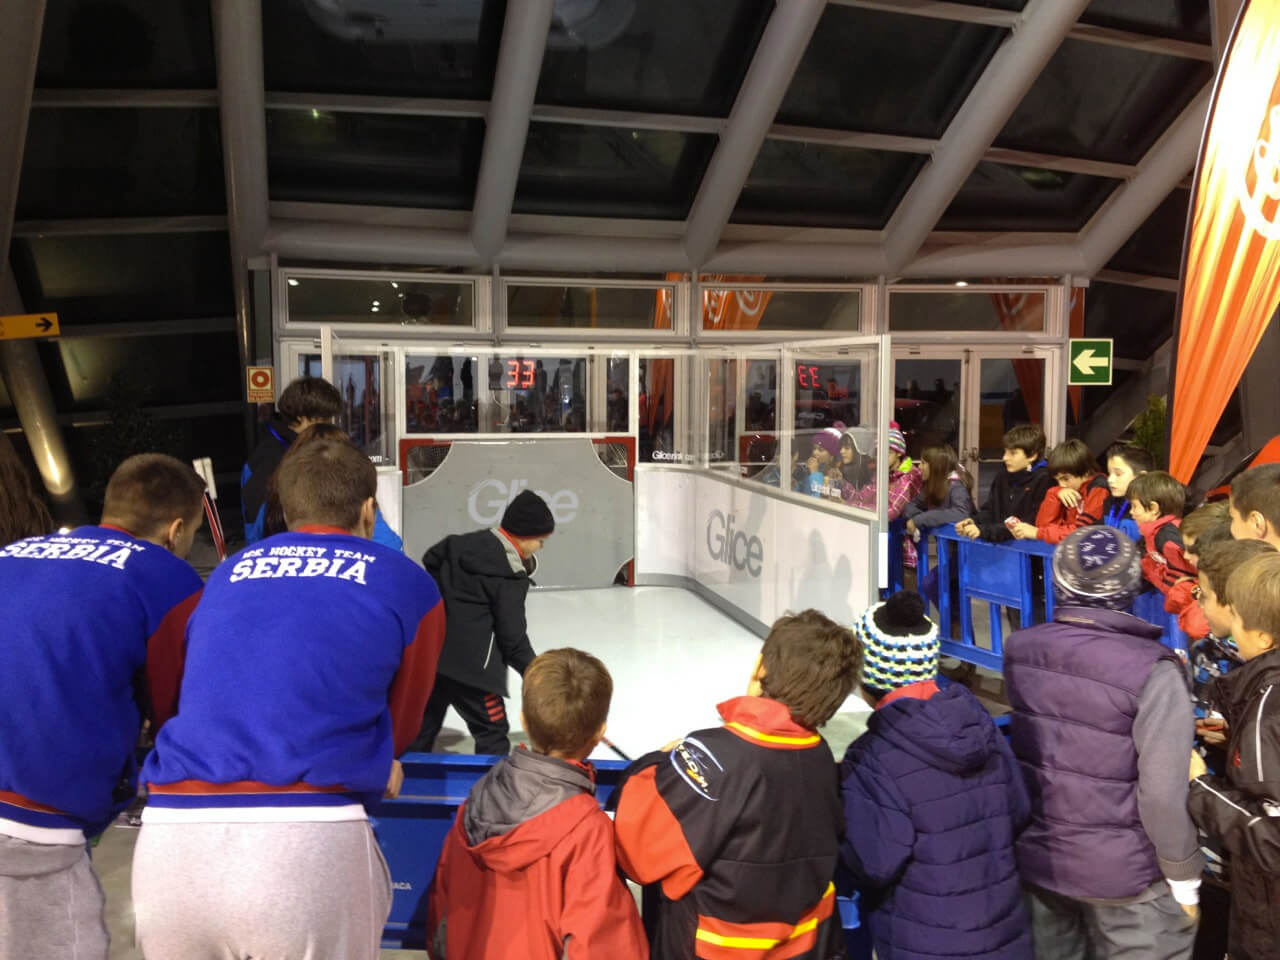 Shooting at artificial ice slapshot station